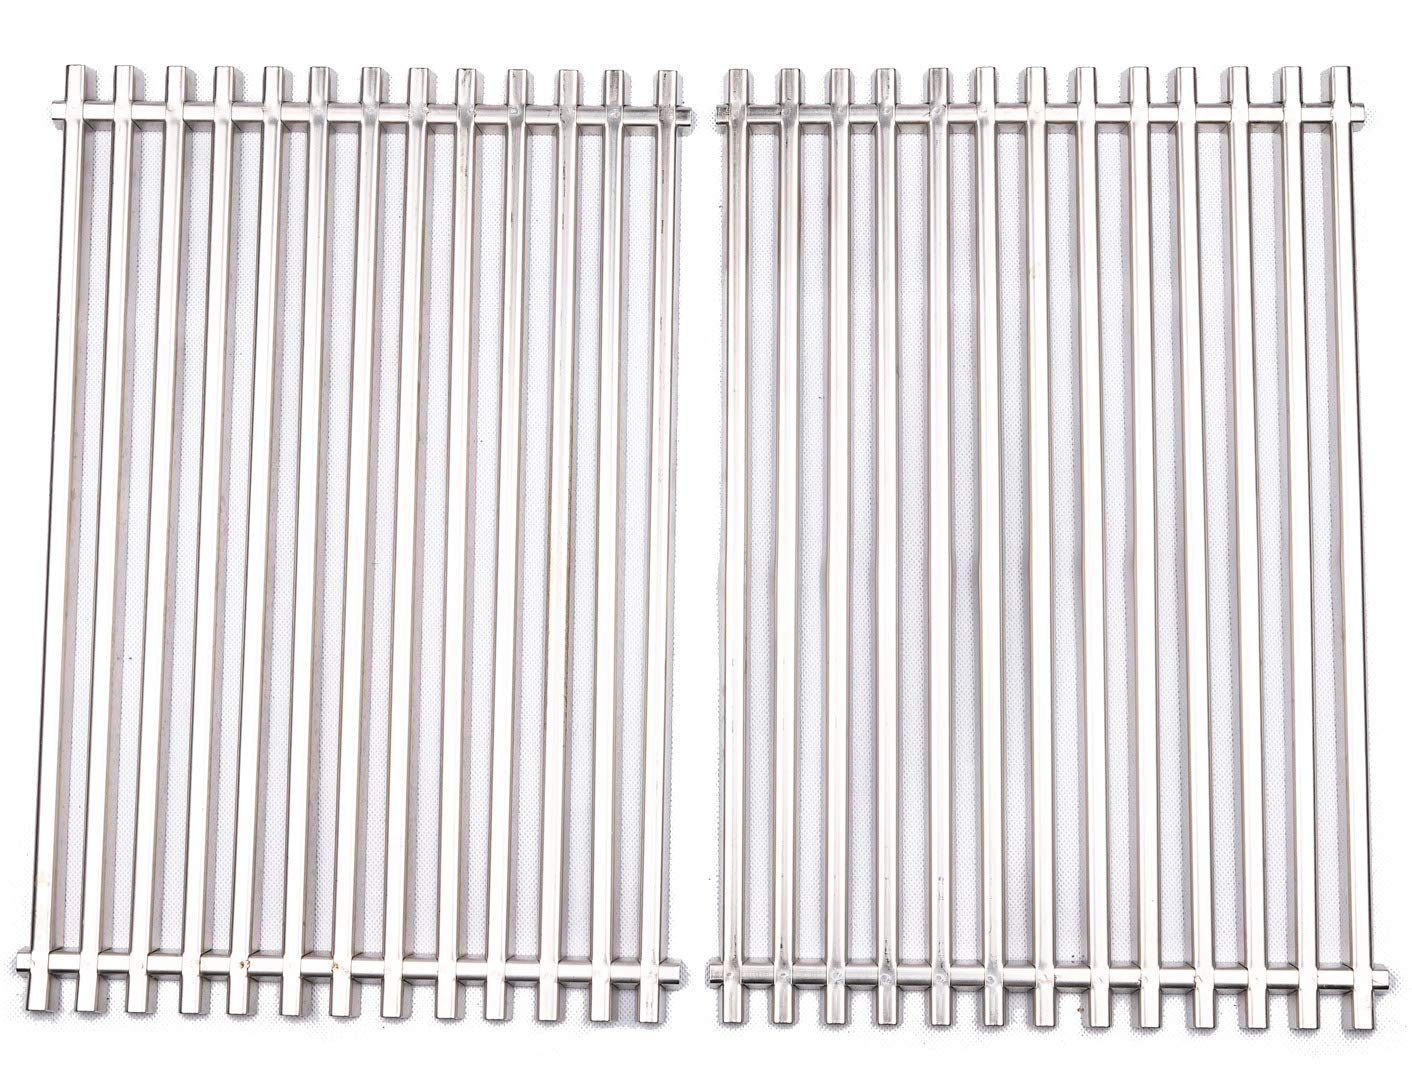 BBQ funland GS521 Aftermarket Stainless Steel Cooking Grid/Cooking Grates Replacement for Weber 7521, Lowes Model Grills and Others, Set of 2 by BBQ funland